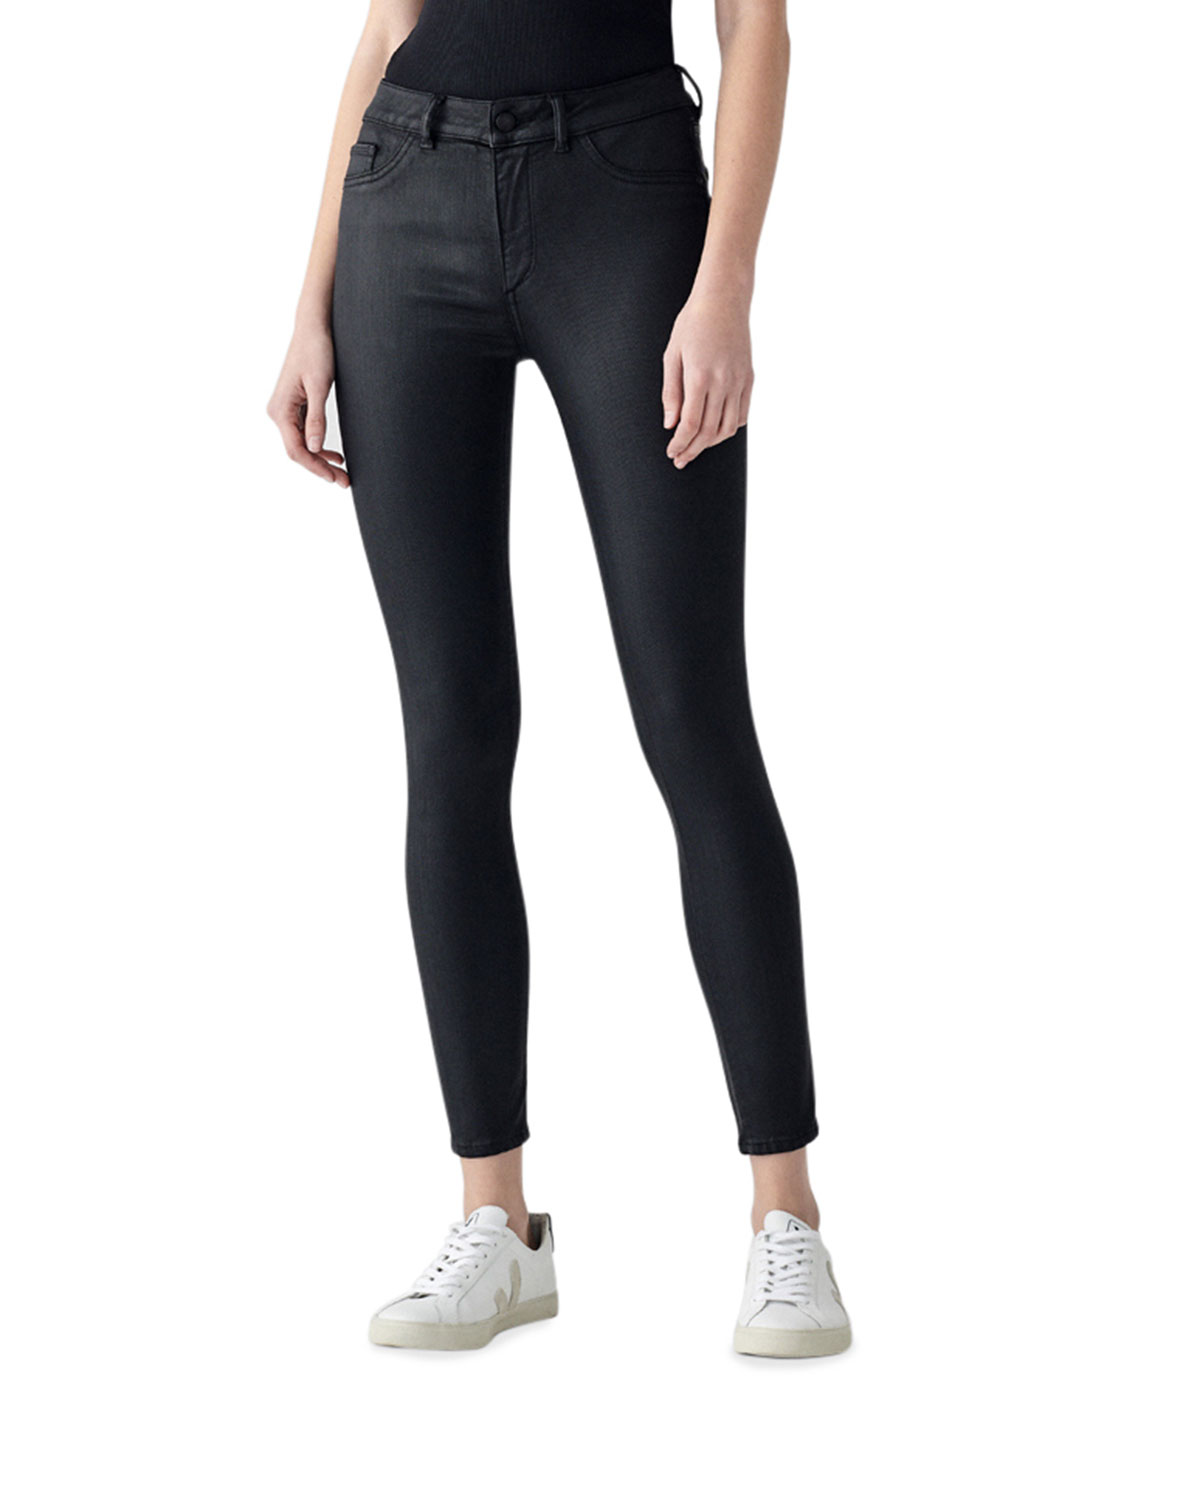 DL1961 Premium Denim Florence Ankle Mid-Rise Skinny Jeans